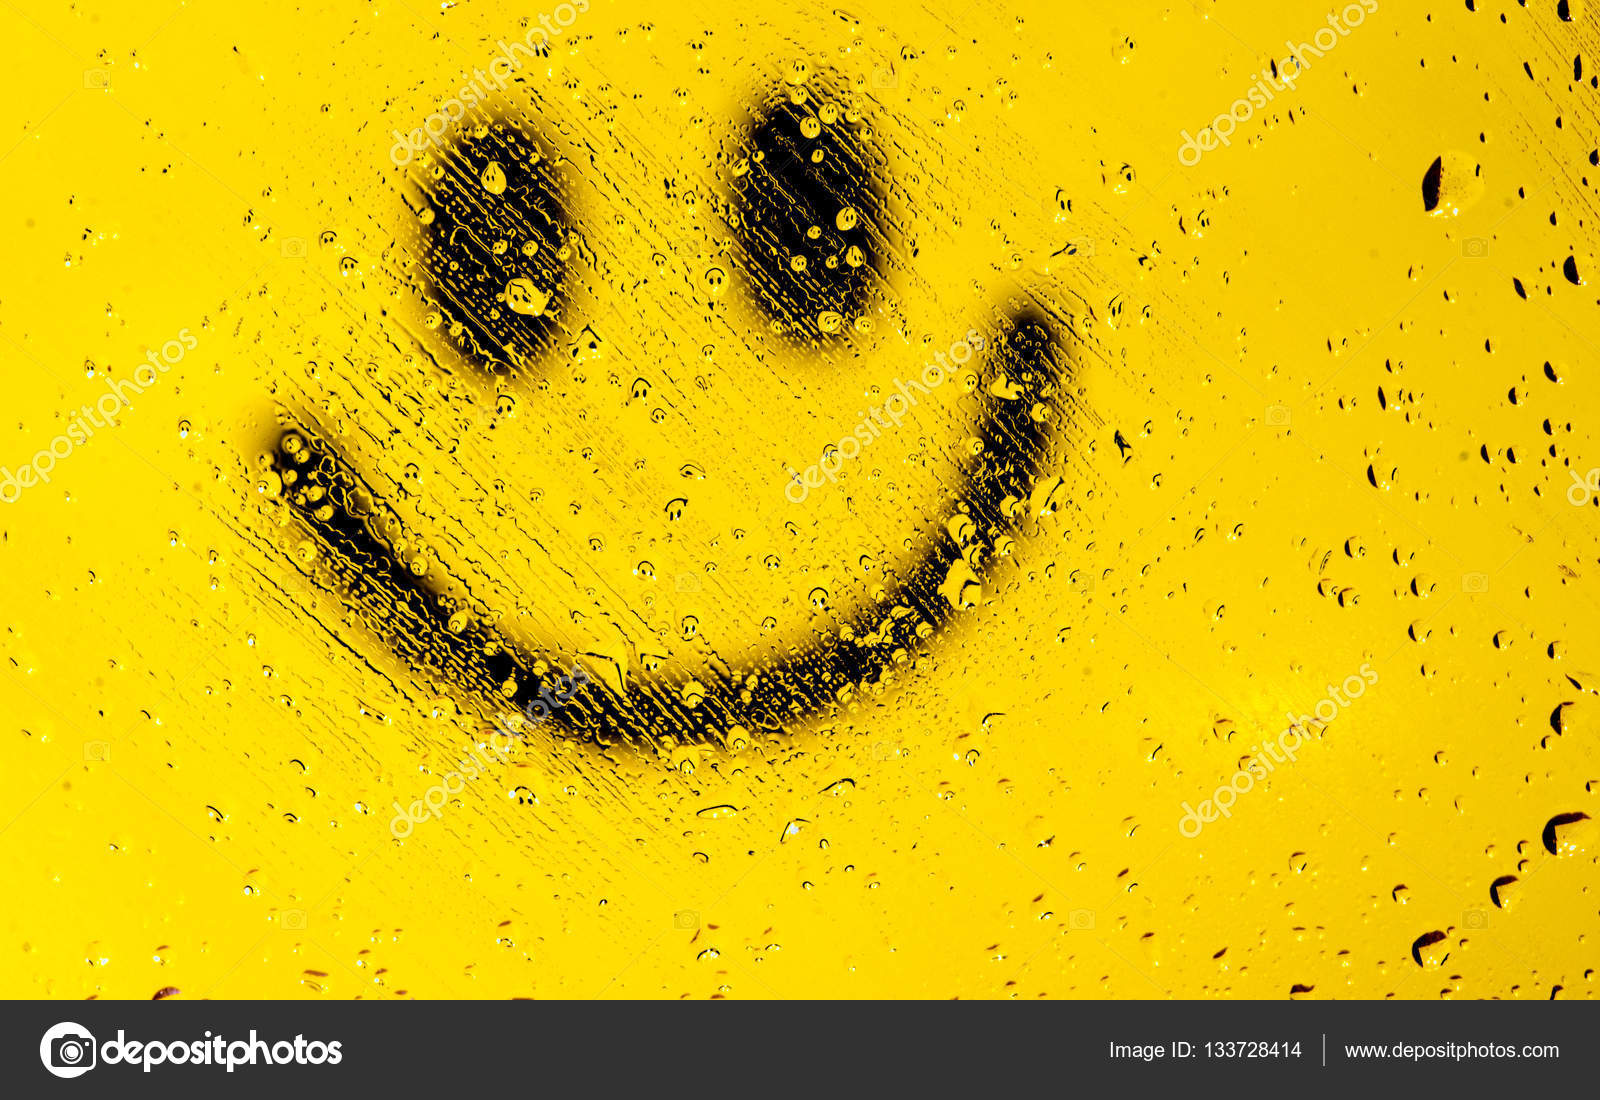 Smiley face yellow smile poster stock photo lomakaster 133728414 smiley face yellow smile poster world smile day funny yellow smiley and water drops a drop of water on a yellow background smiley wallpaper altavistaventures Image collections